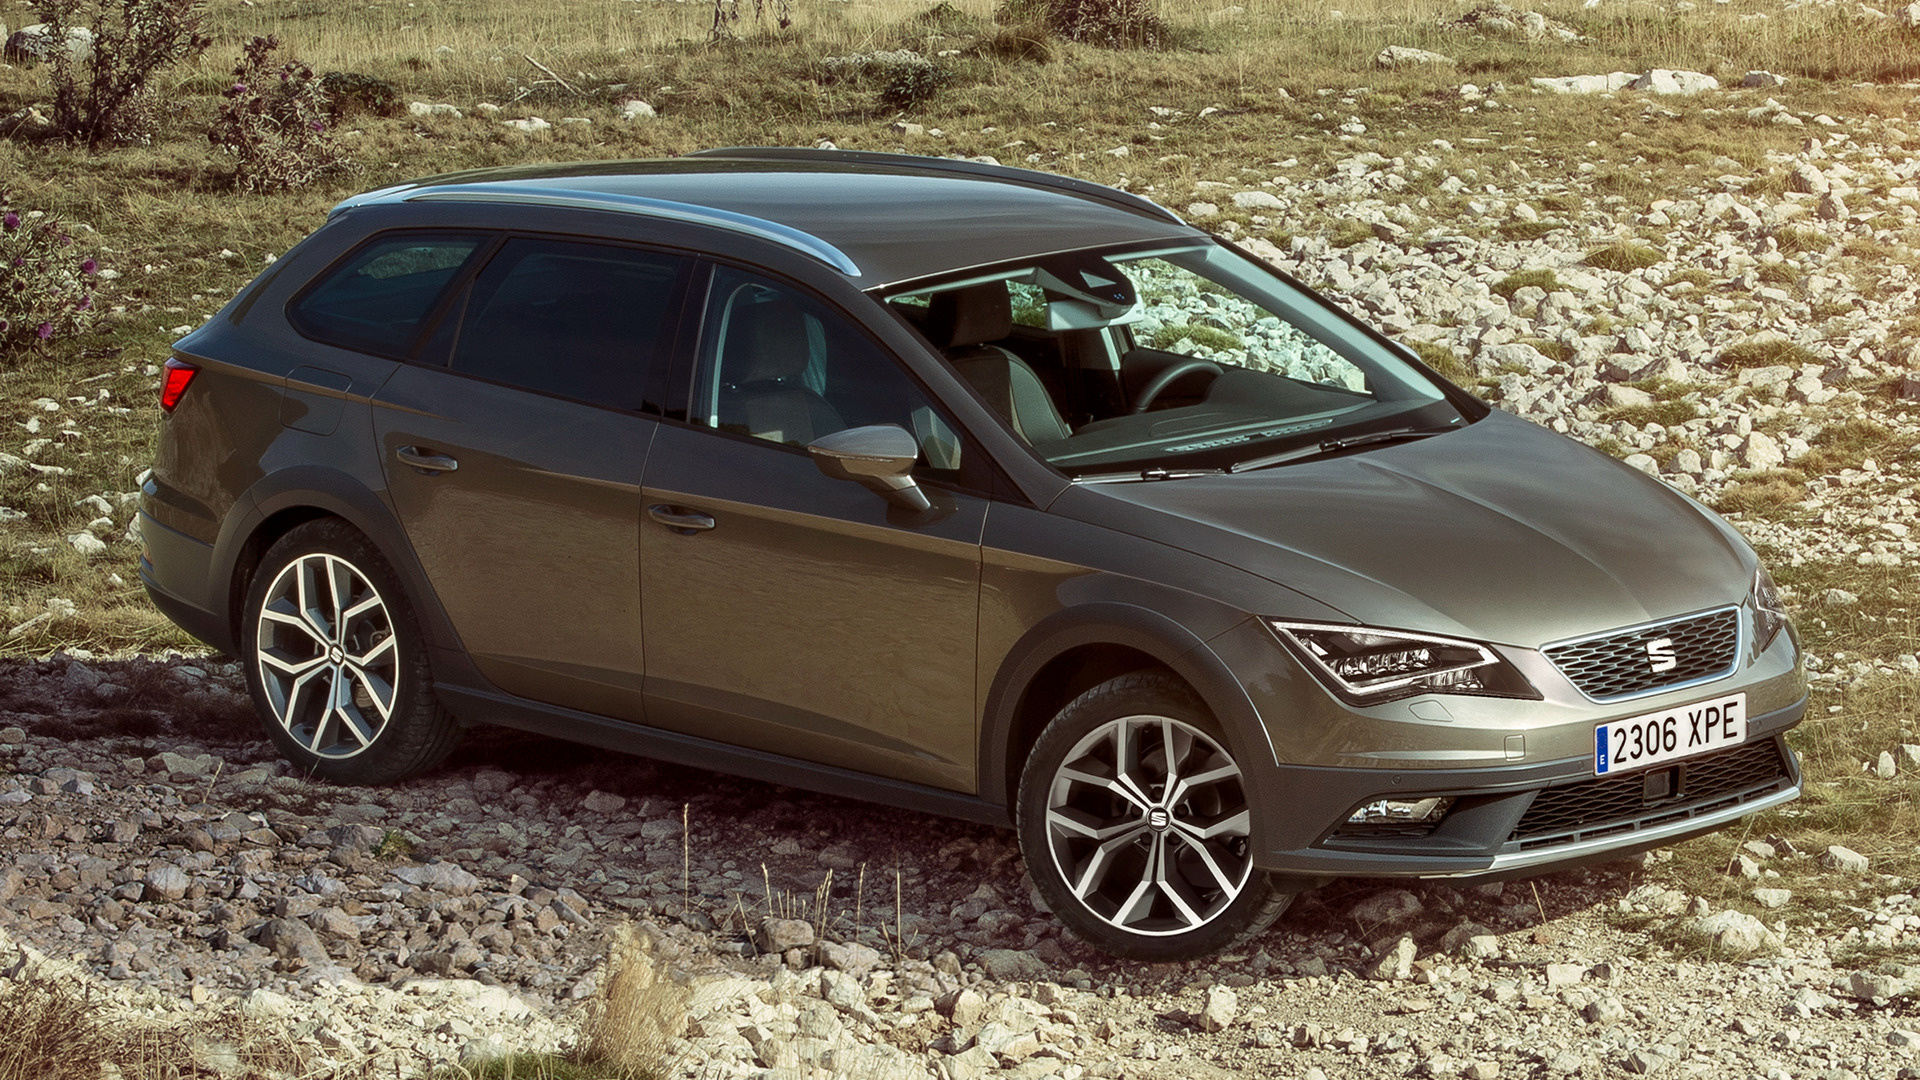 seat leon x perience 2014 wallpapers and hd images car. Black Bedroom Furniture Sets. Home Design Ideas